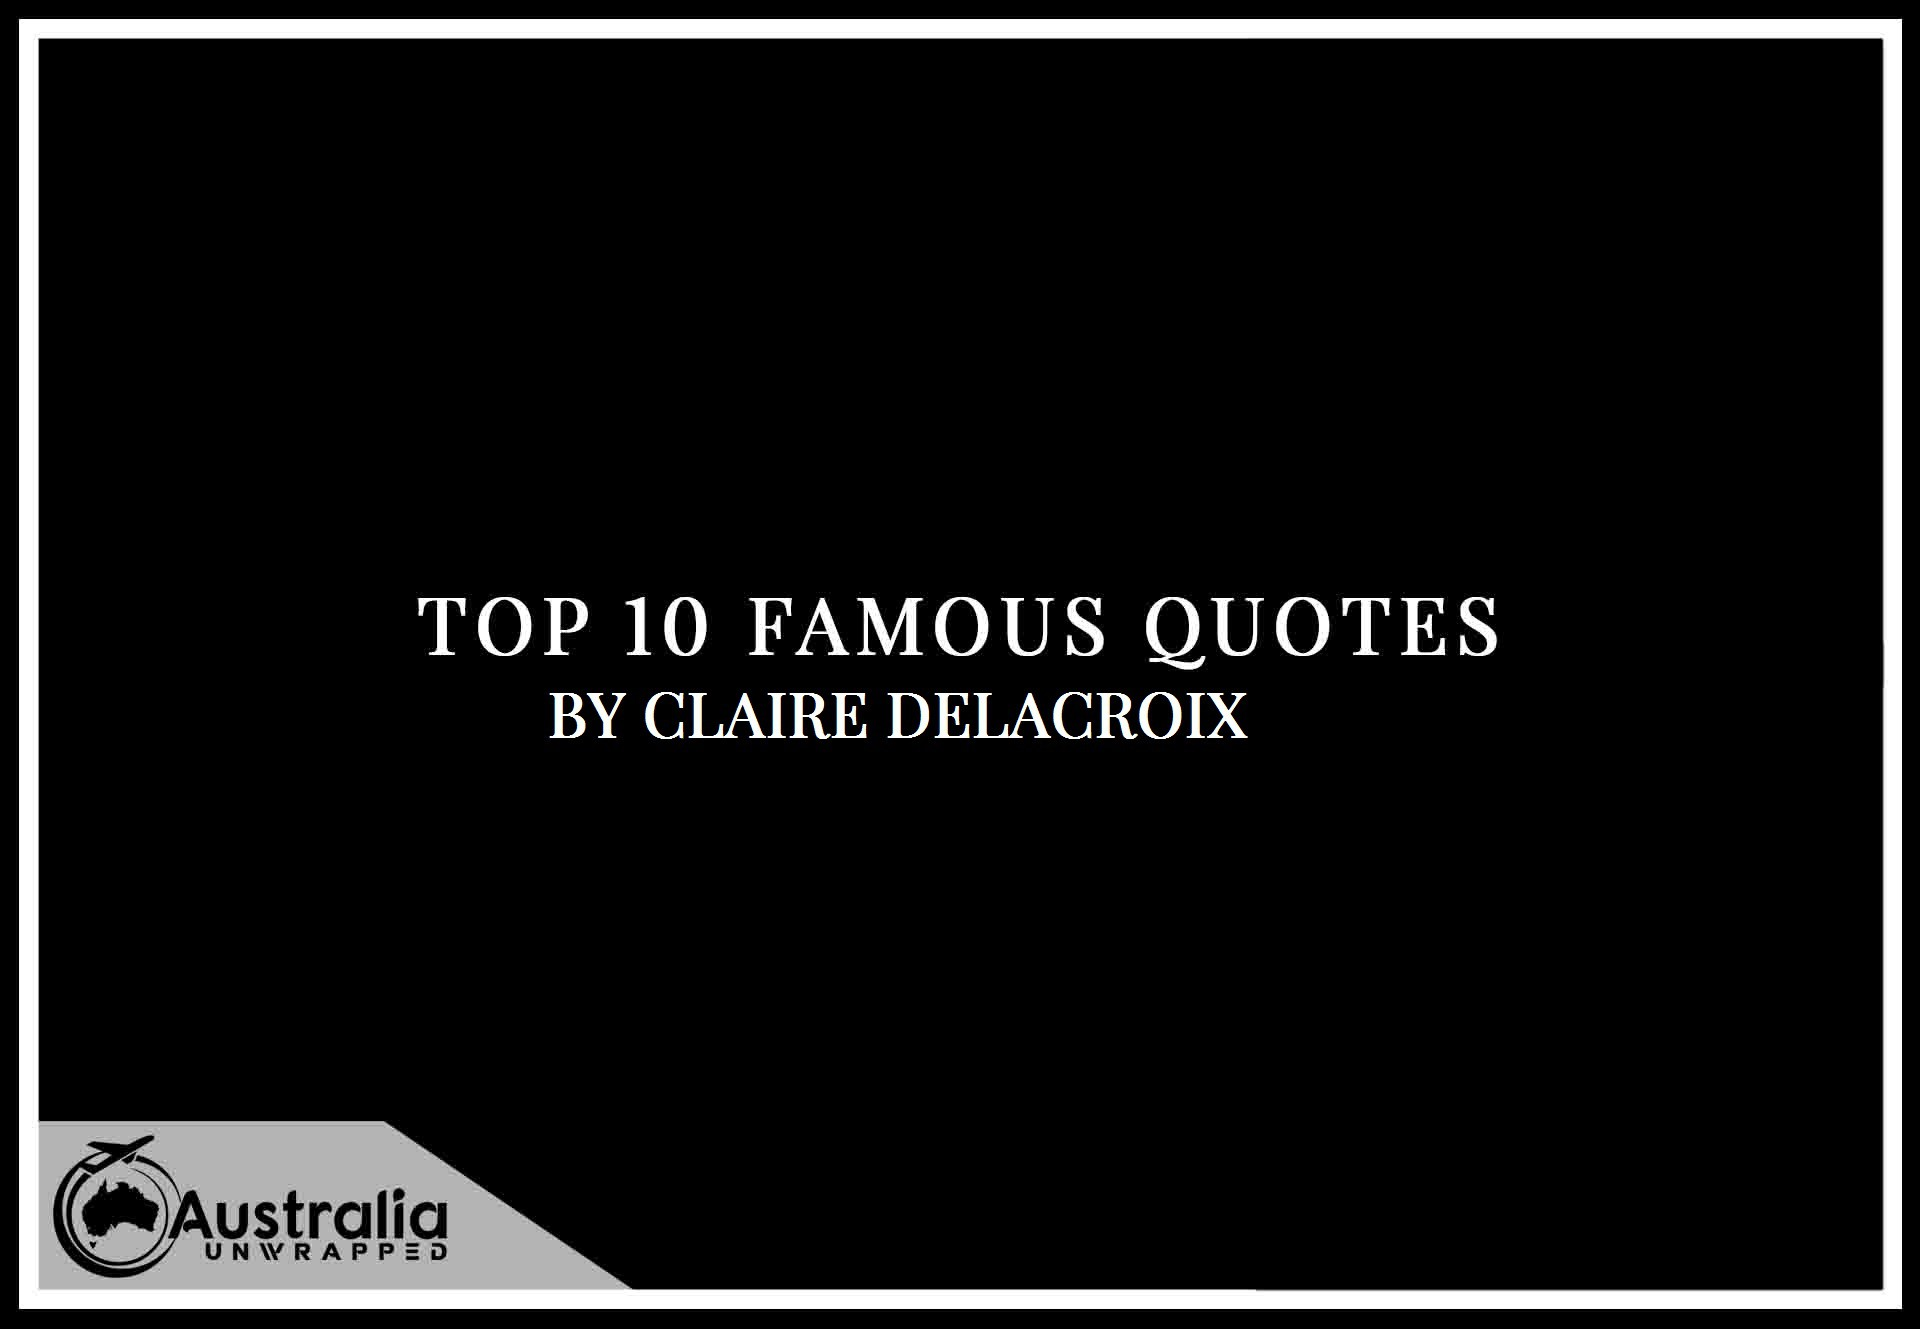 Claire Delacroix's Top 10 Popular and Famous Quotes